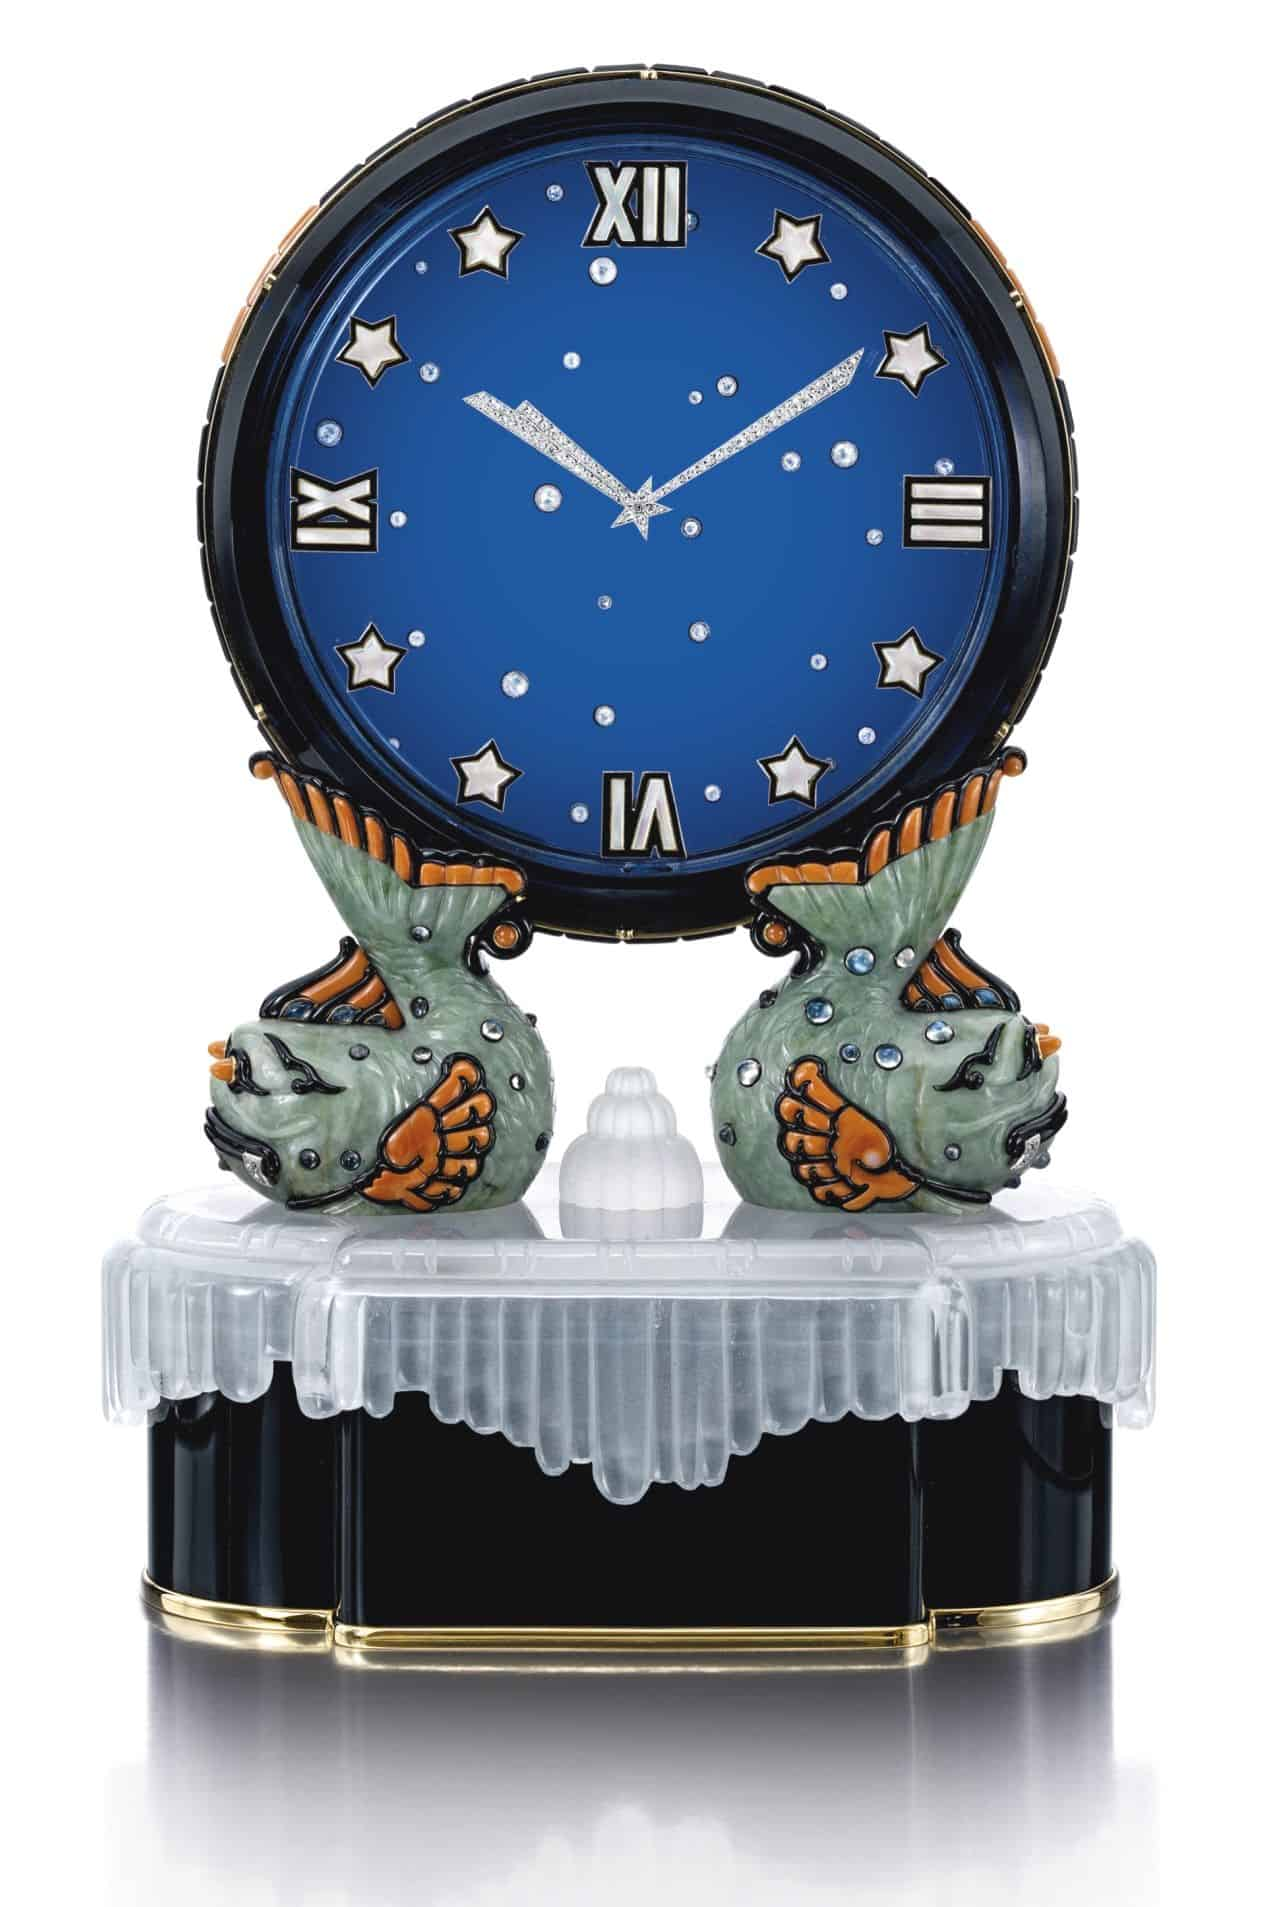 Lot 1790 - Superb and Rare Art Deco Gem Set and Diamond Mystery Clock, 'Le Ciel', Cartier, 1928